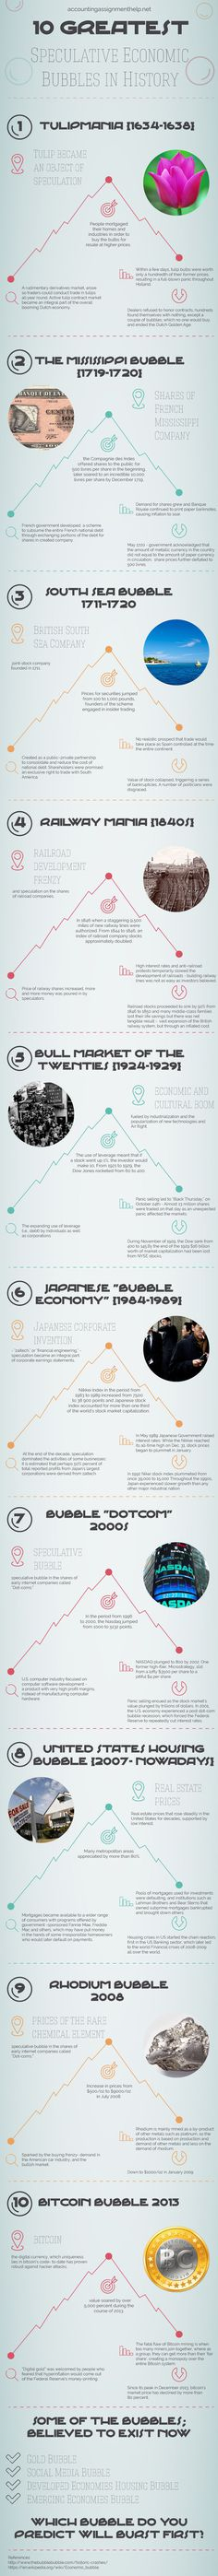 10 Greatest Economic Speculative Bubbles in History Infographic Want to understand how Economic Bubbles work? This Visualization of Financ #history #economic #bubbles #infographic #economicbubbles #economicinfographic